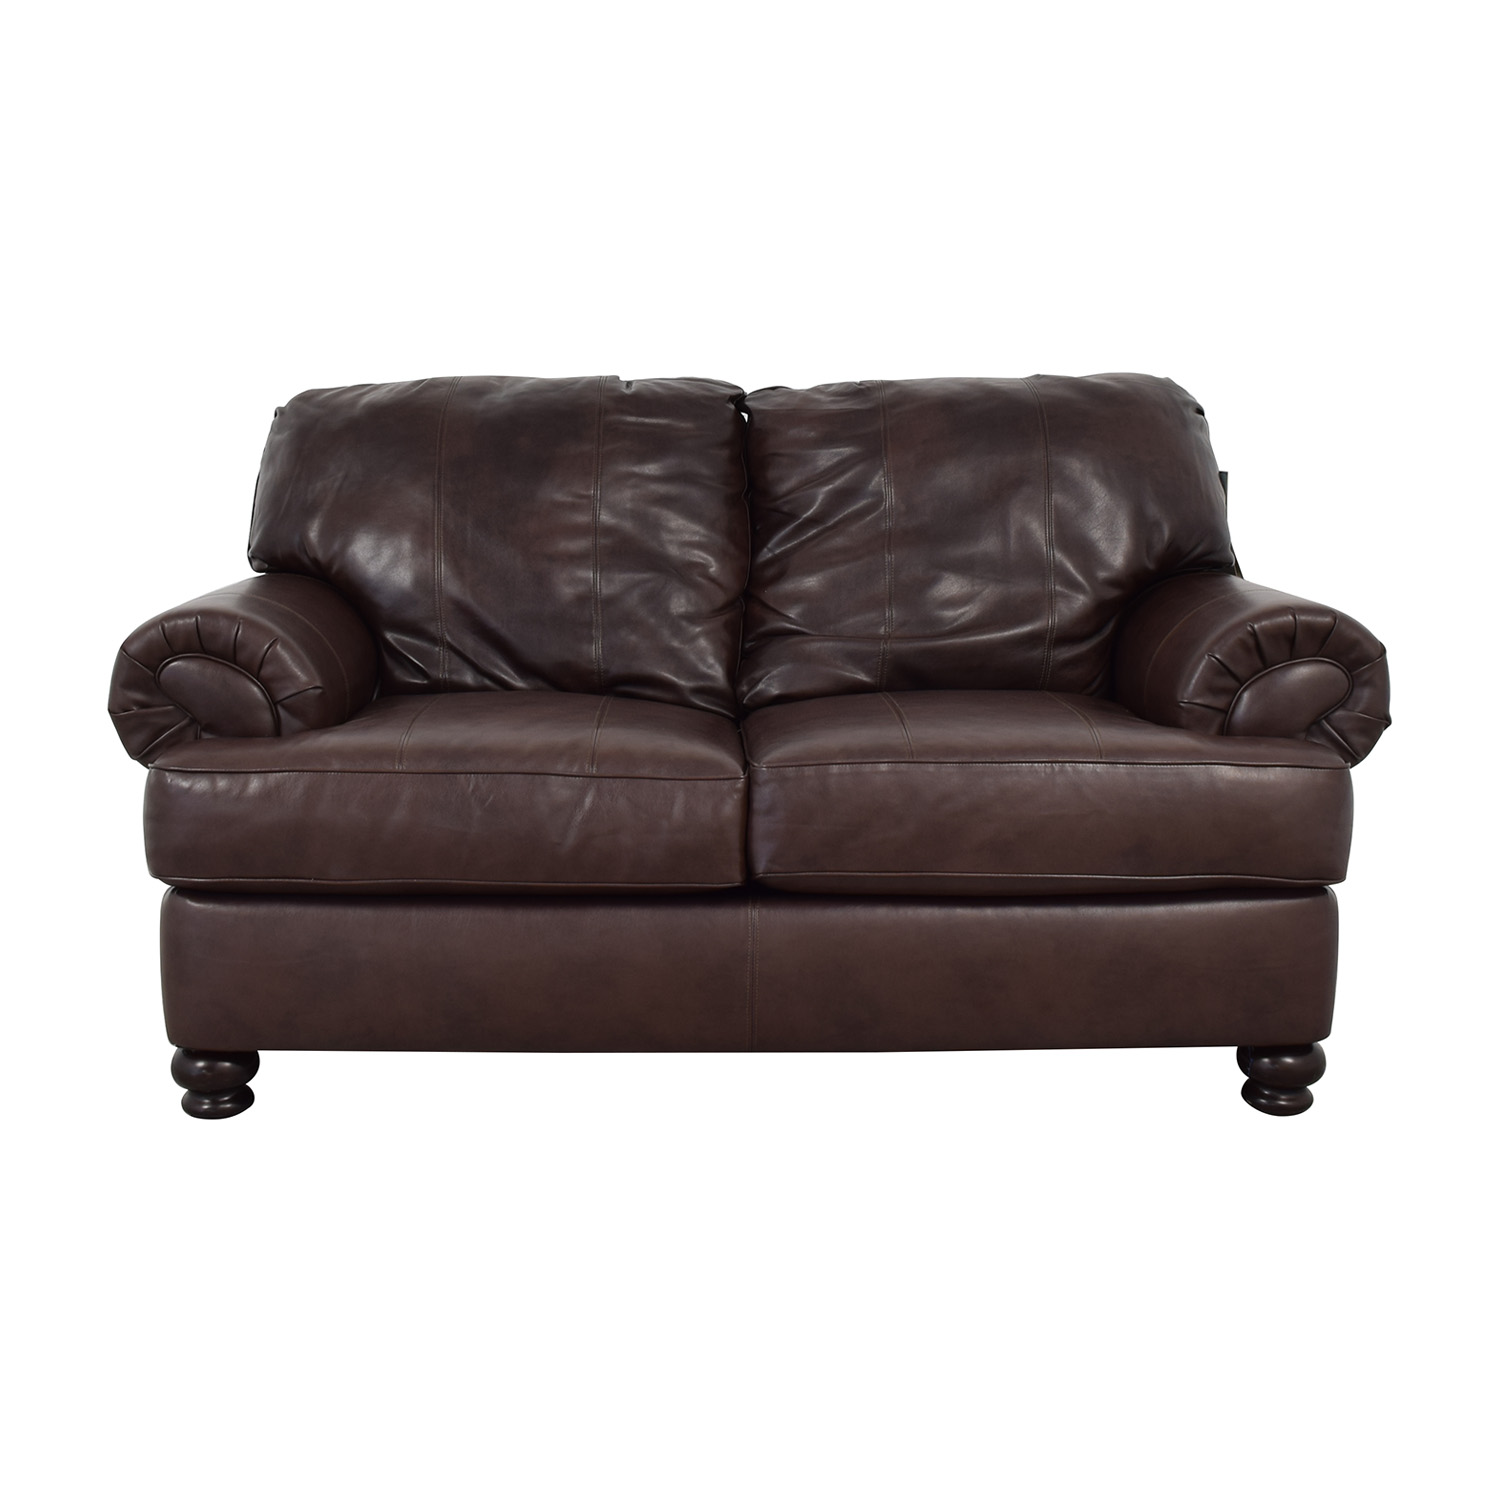 Jackson Furniture Jackson Furniture Charlotte Brown Loveseat Sofas